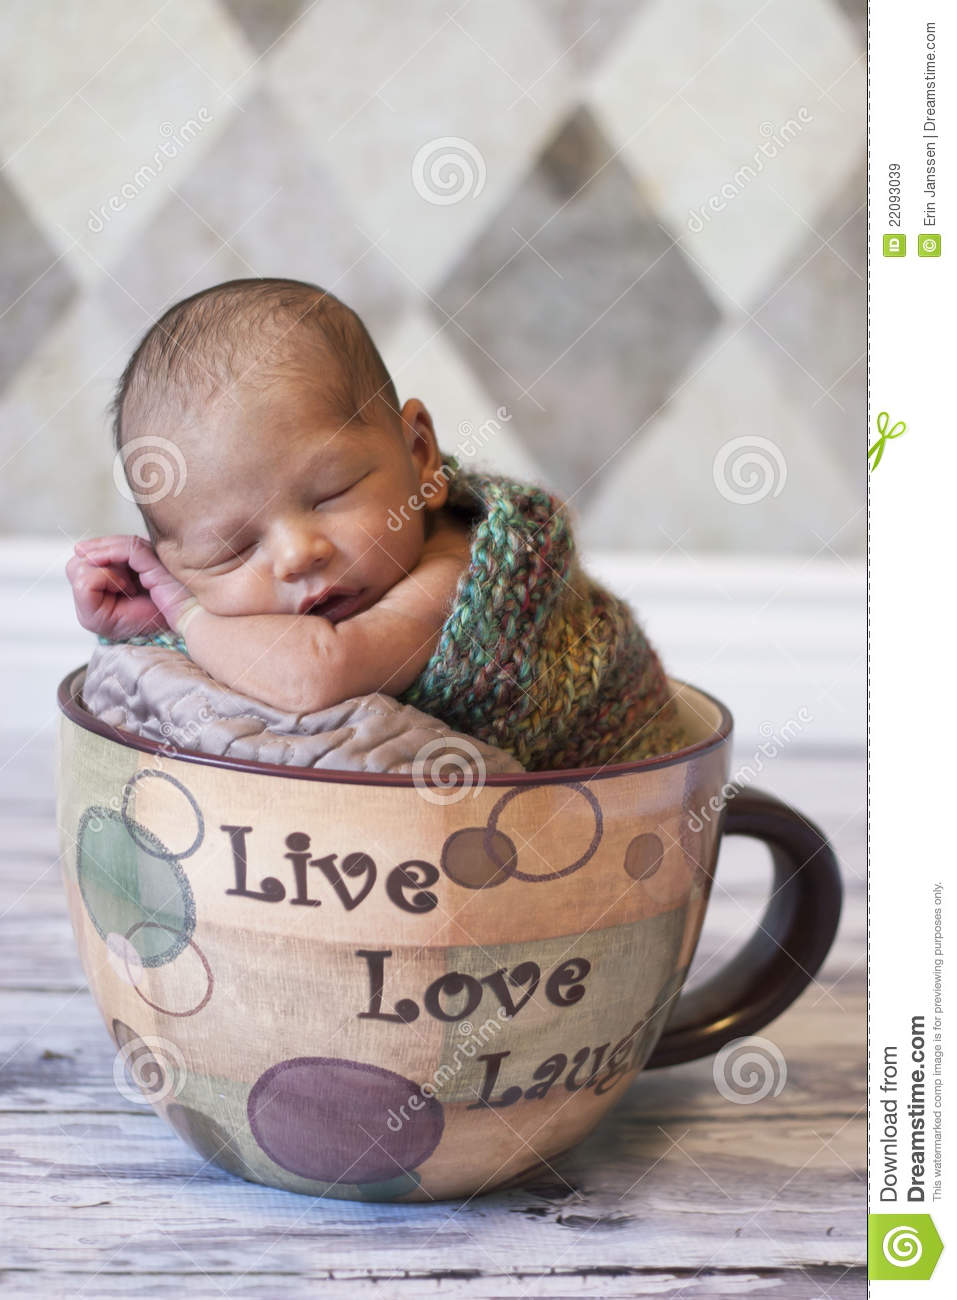 Newborn Sleeping In Giant Coffee Cup Stock Image Image